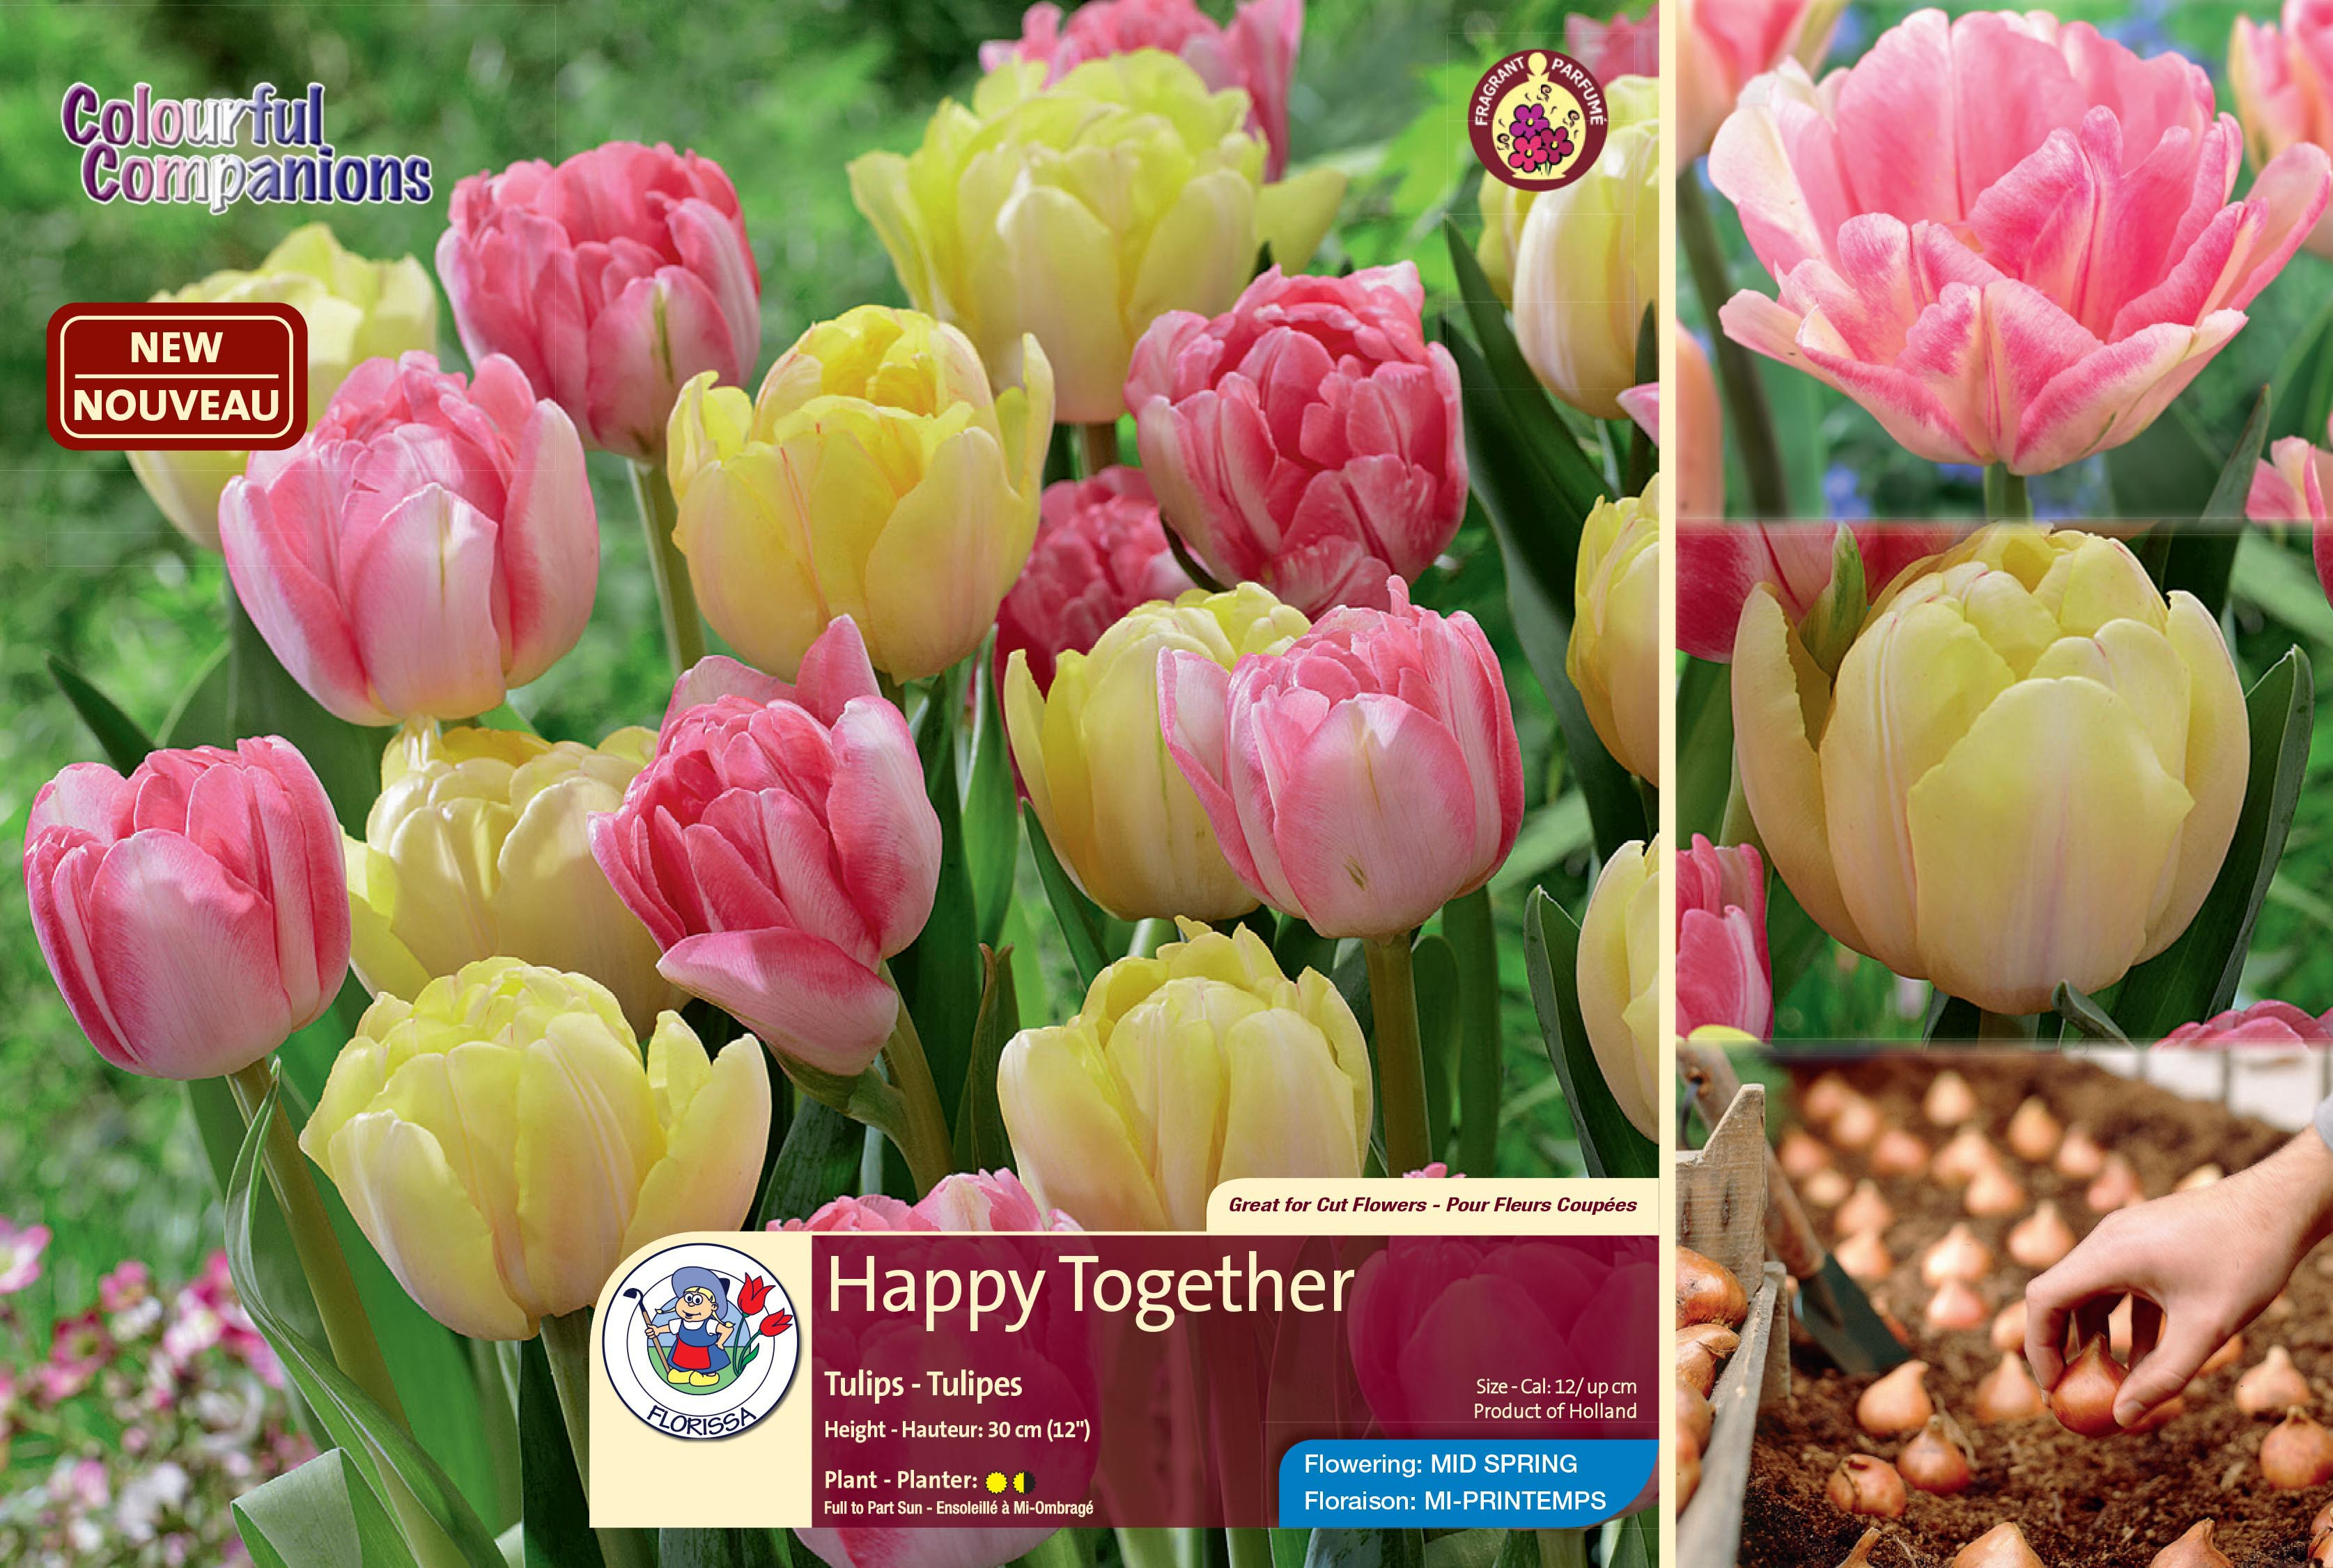 Happy Together Fragrant Tulips Flowering In Mid Spring